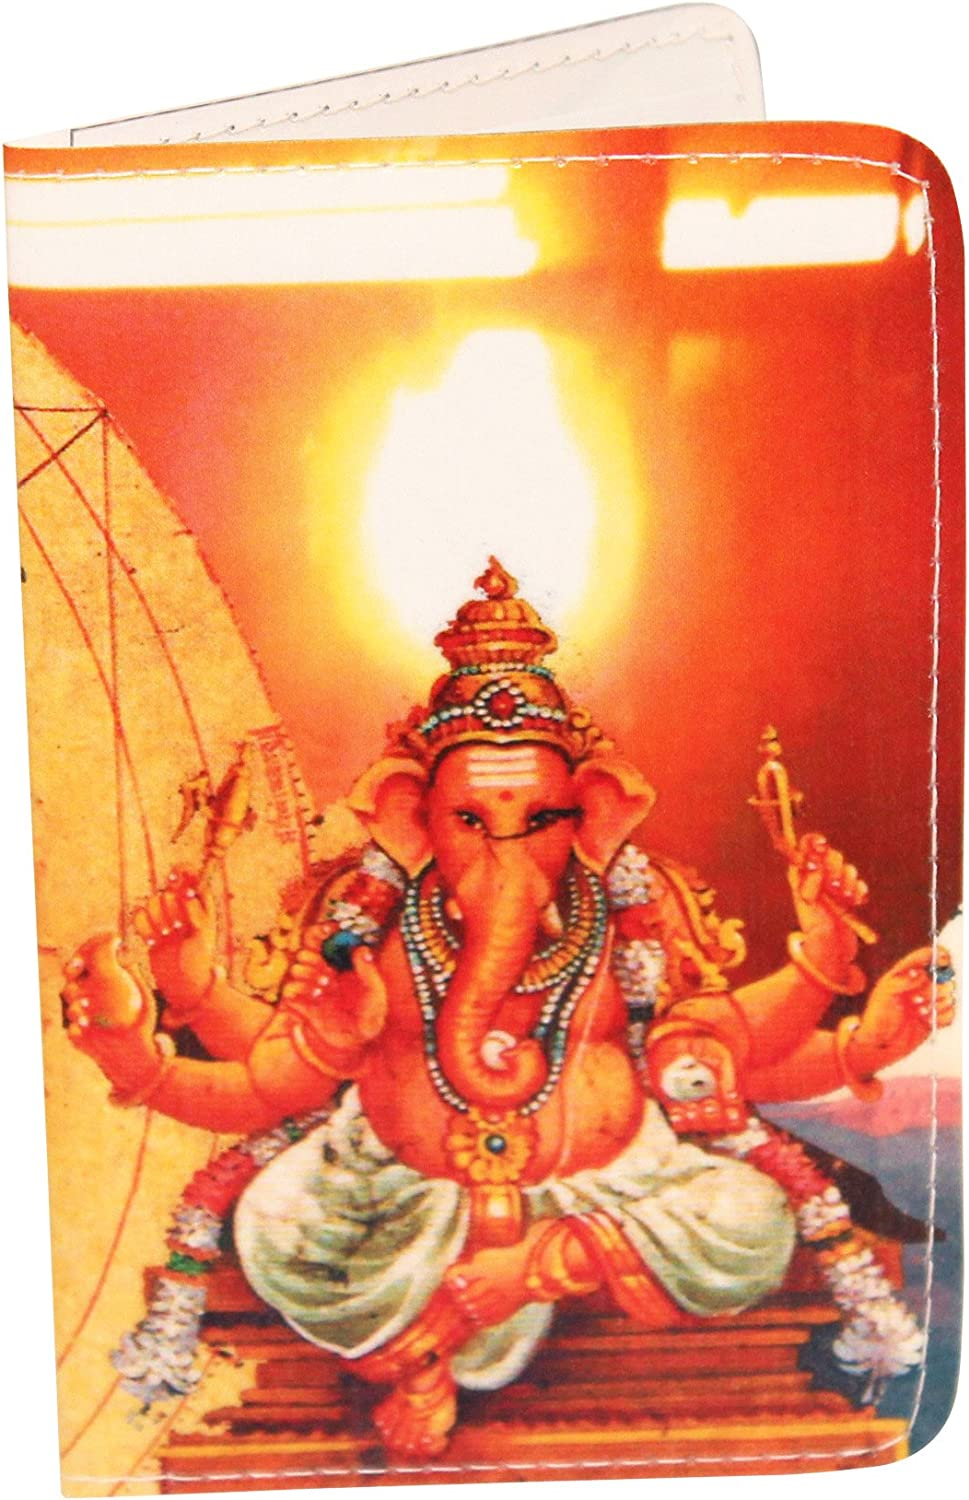 Ganesha: Remover of Obstacles Business, Credit & ID Card Holder